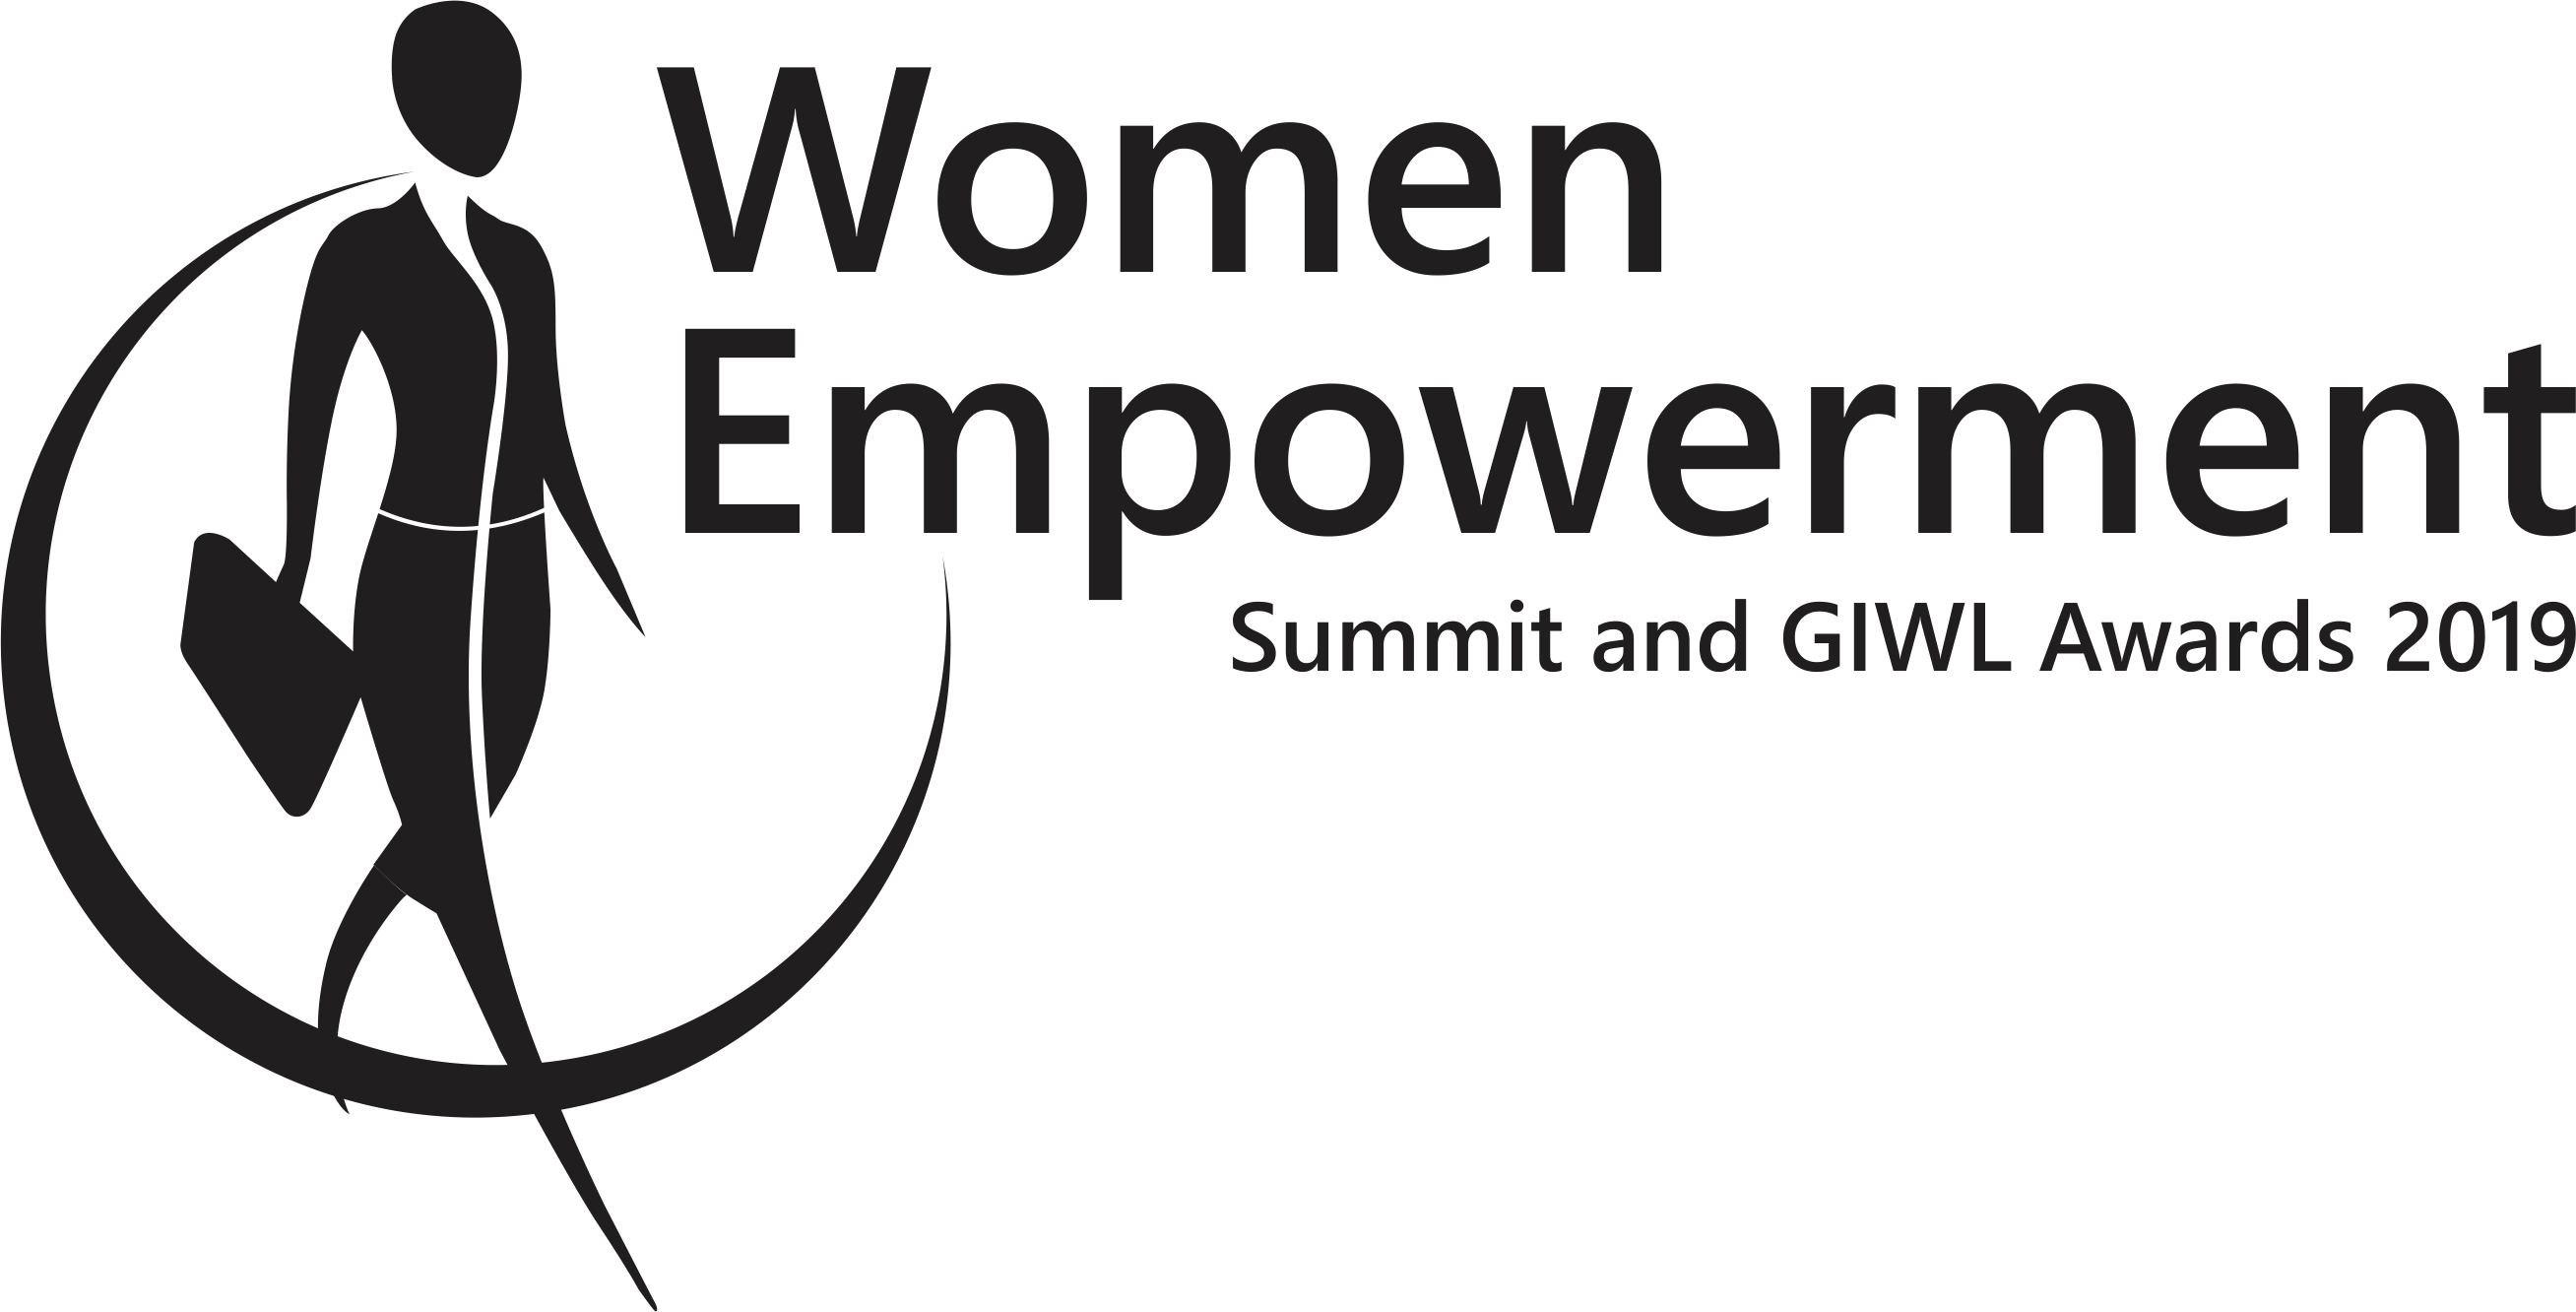 Women Empowerment Summit and GIWL Awards 2019